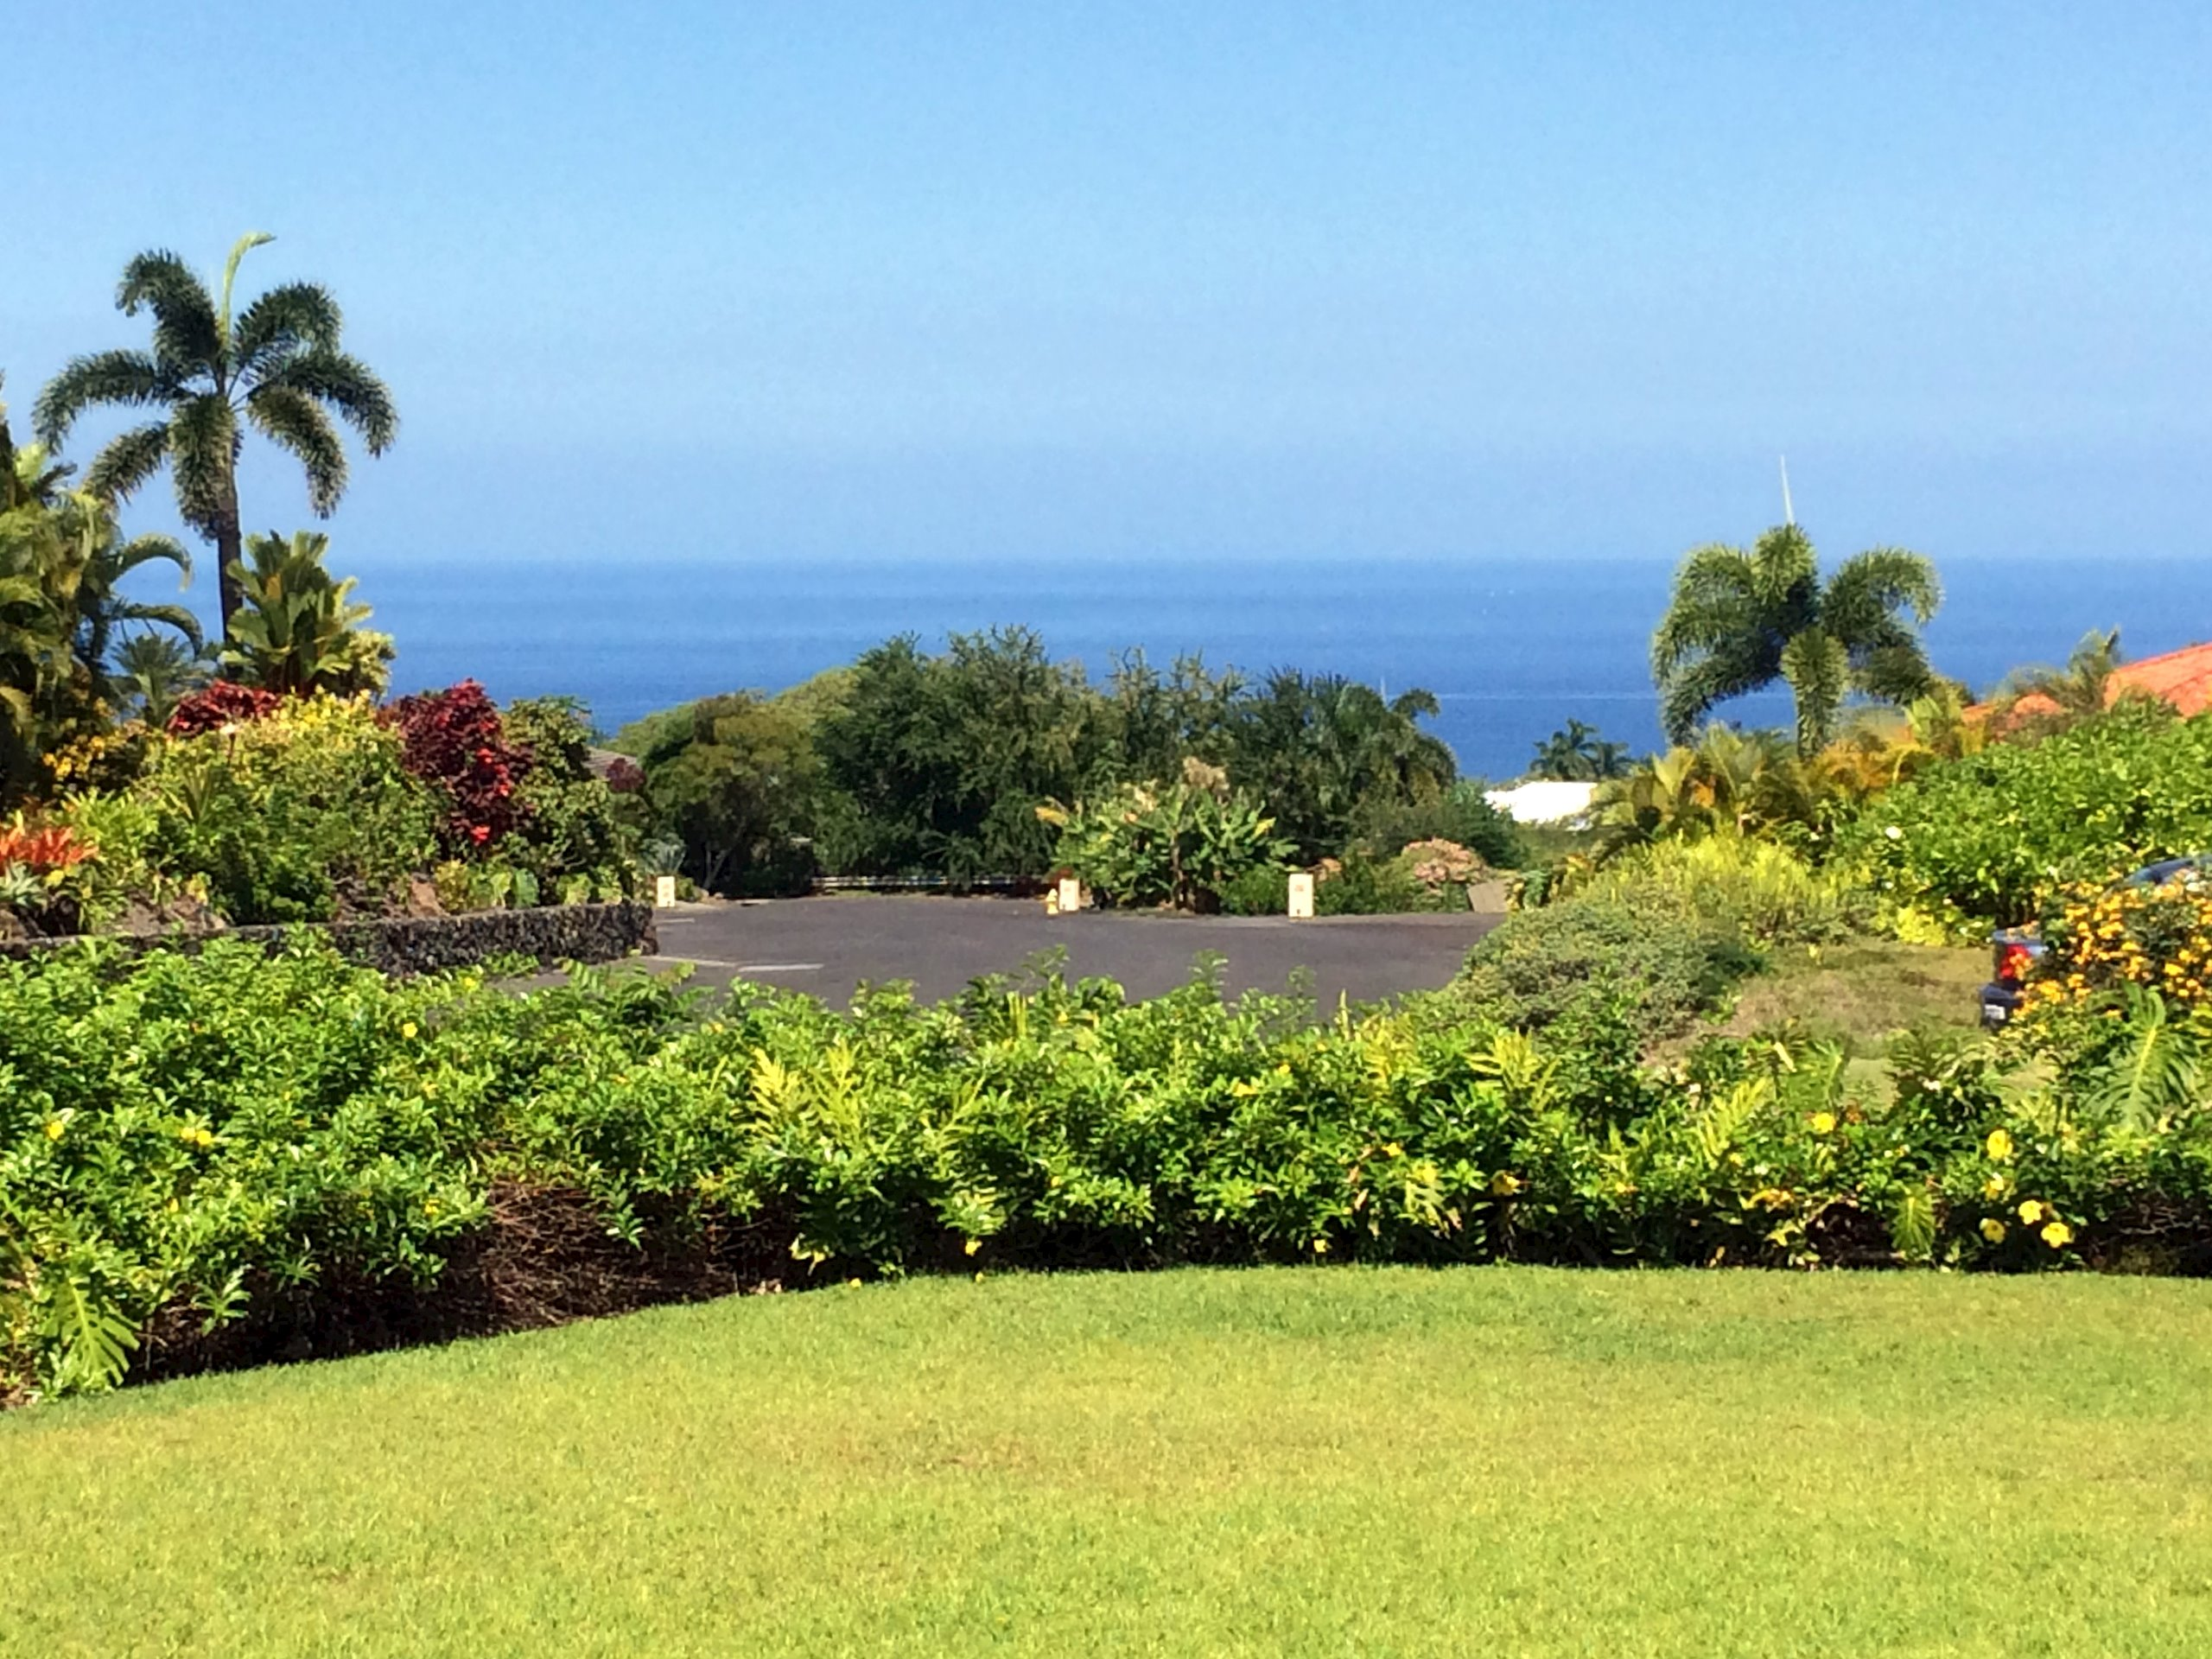 Beautifully landscaped lot with rock walls and ocean views - ready for your Hawaii vision.  Easy to build - level lot - beautiful plantings and rock walls.  Located in a tropical neighborhood of luxury homes<br>above town and just 5 minutes from restaurants, the Pier and downtown shopping.  Close to golf and ocean activities.  The subdivision minimum size is 1200 sf with stucco exterior and tile roof.<br>This is a gated Tennis Community with two well maintained Tennis Courts - located in the Holualoa School District.